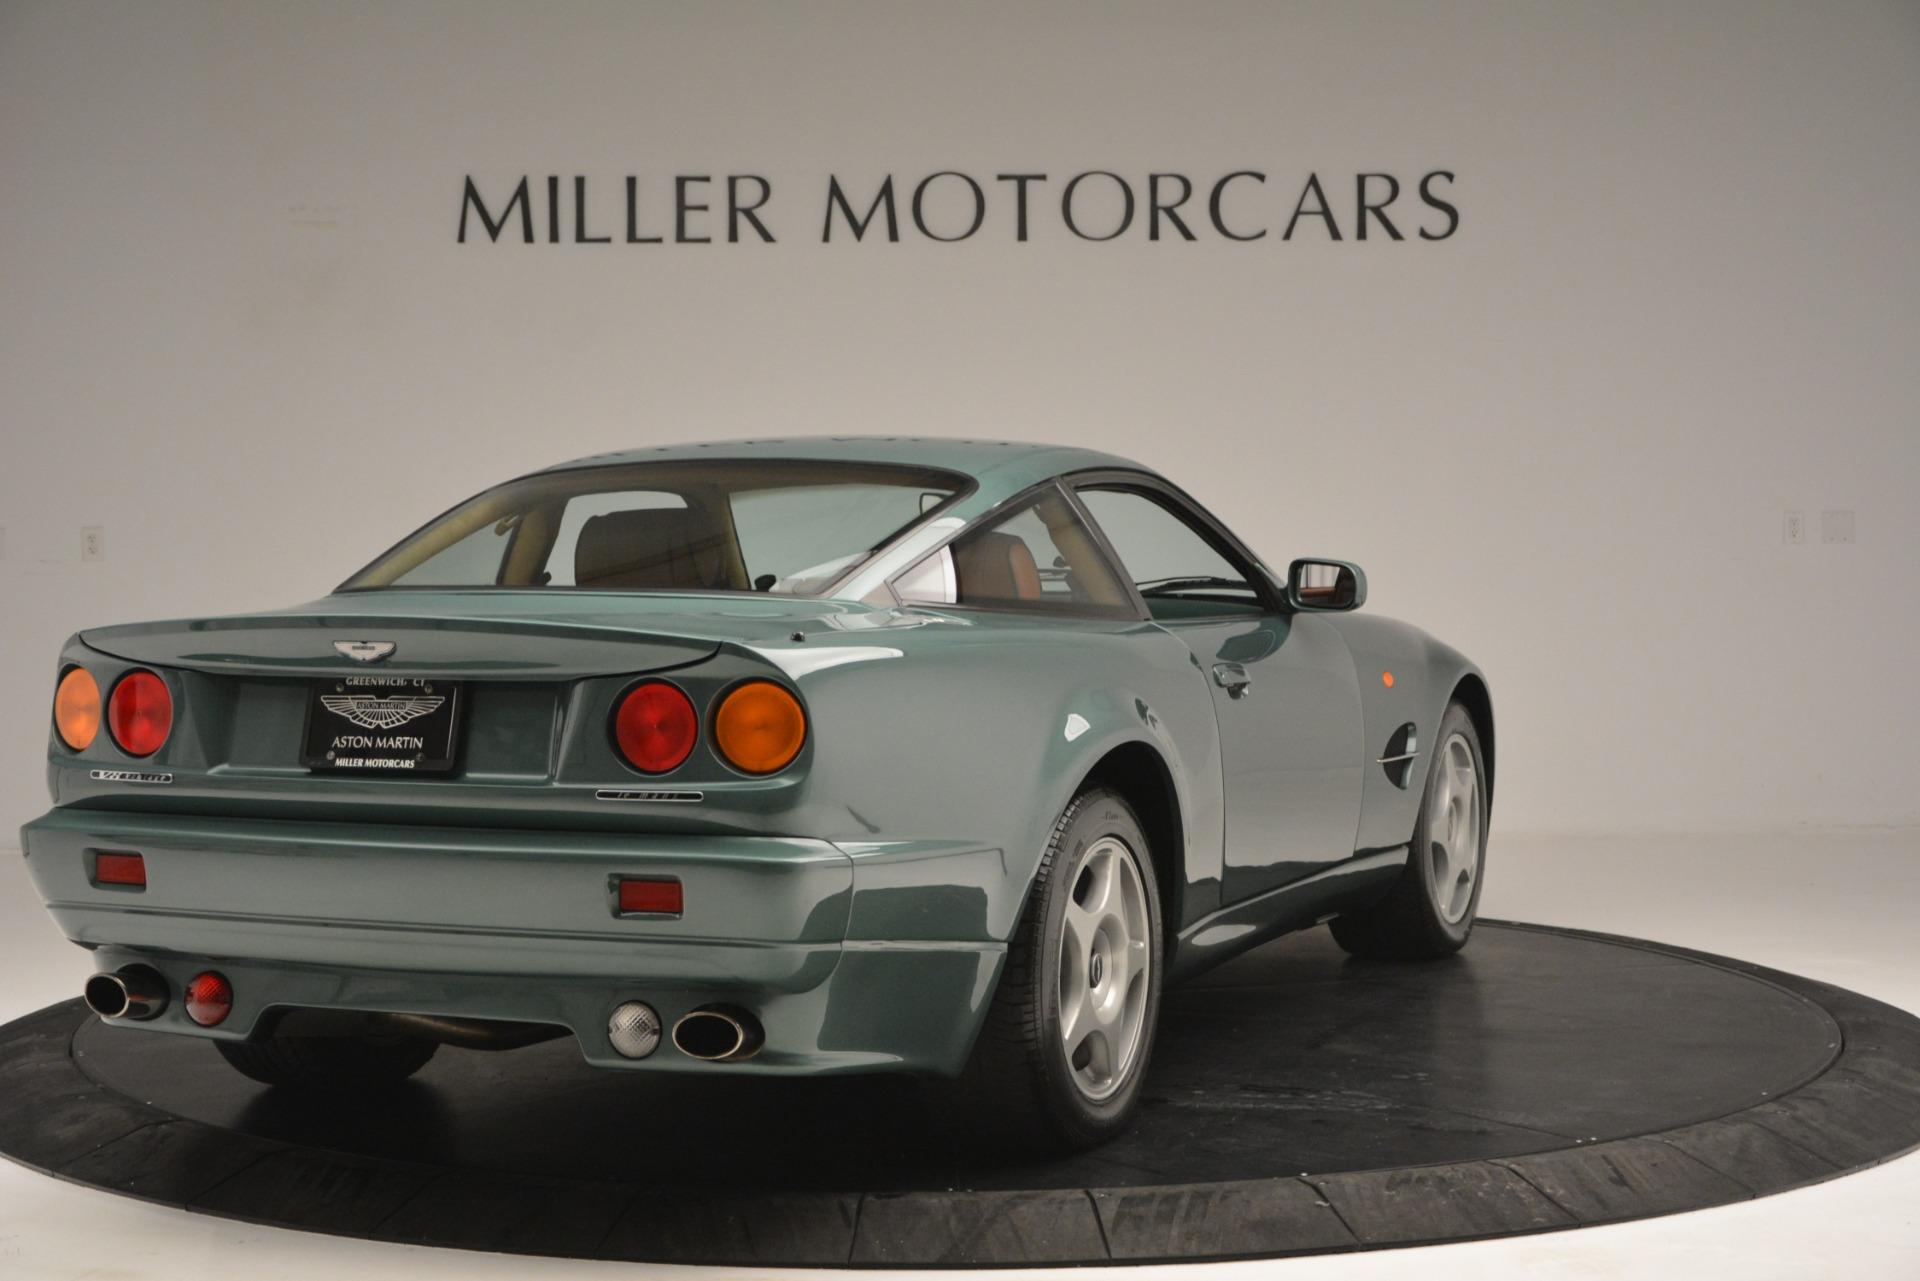 Used 1999 Aston Martin V8 Vantage Le Mans V600 Coupe For Sale In Westport, CT 2789_p8